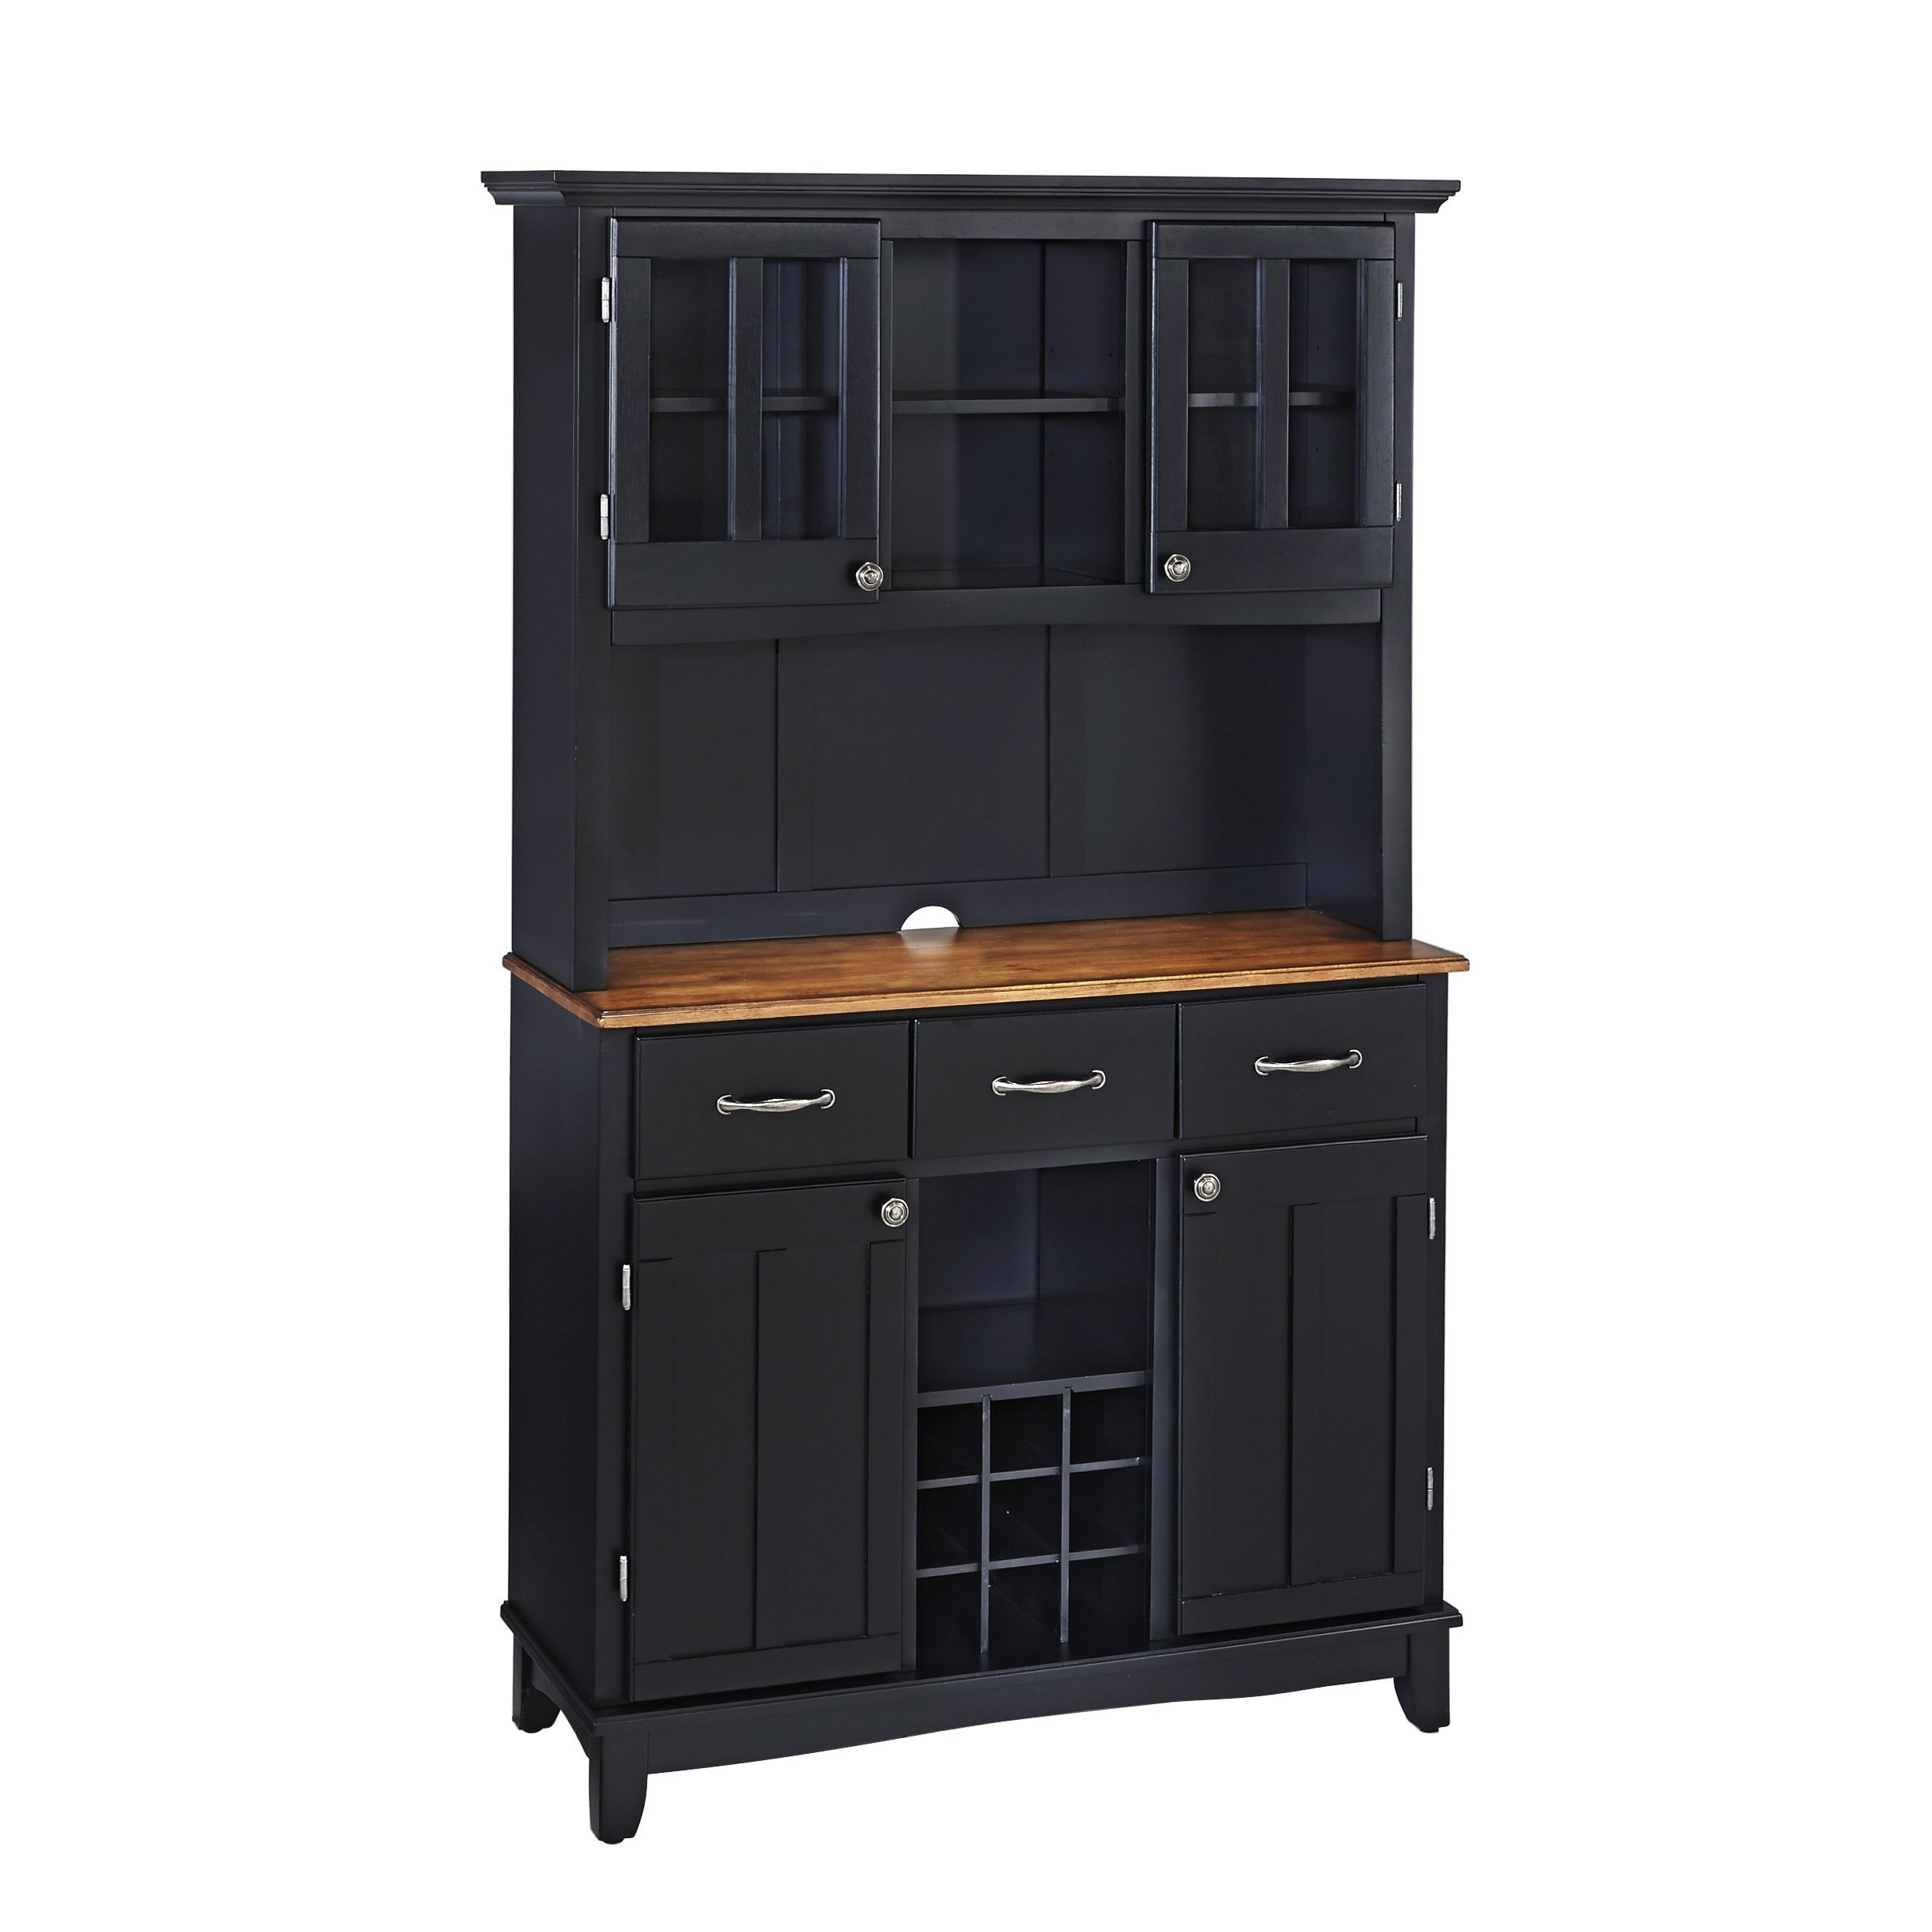 Buffet of Buffets Black with Cottage Oak Wood Top with Hutch by Home Styles, Large Server with Cottage Oak Wood Top & Hutch by Home Styles